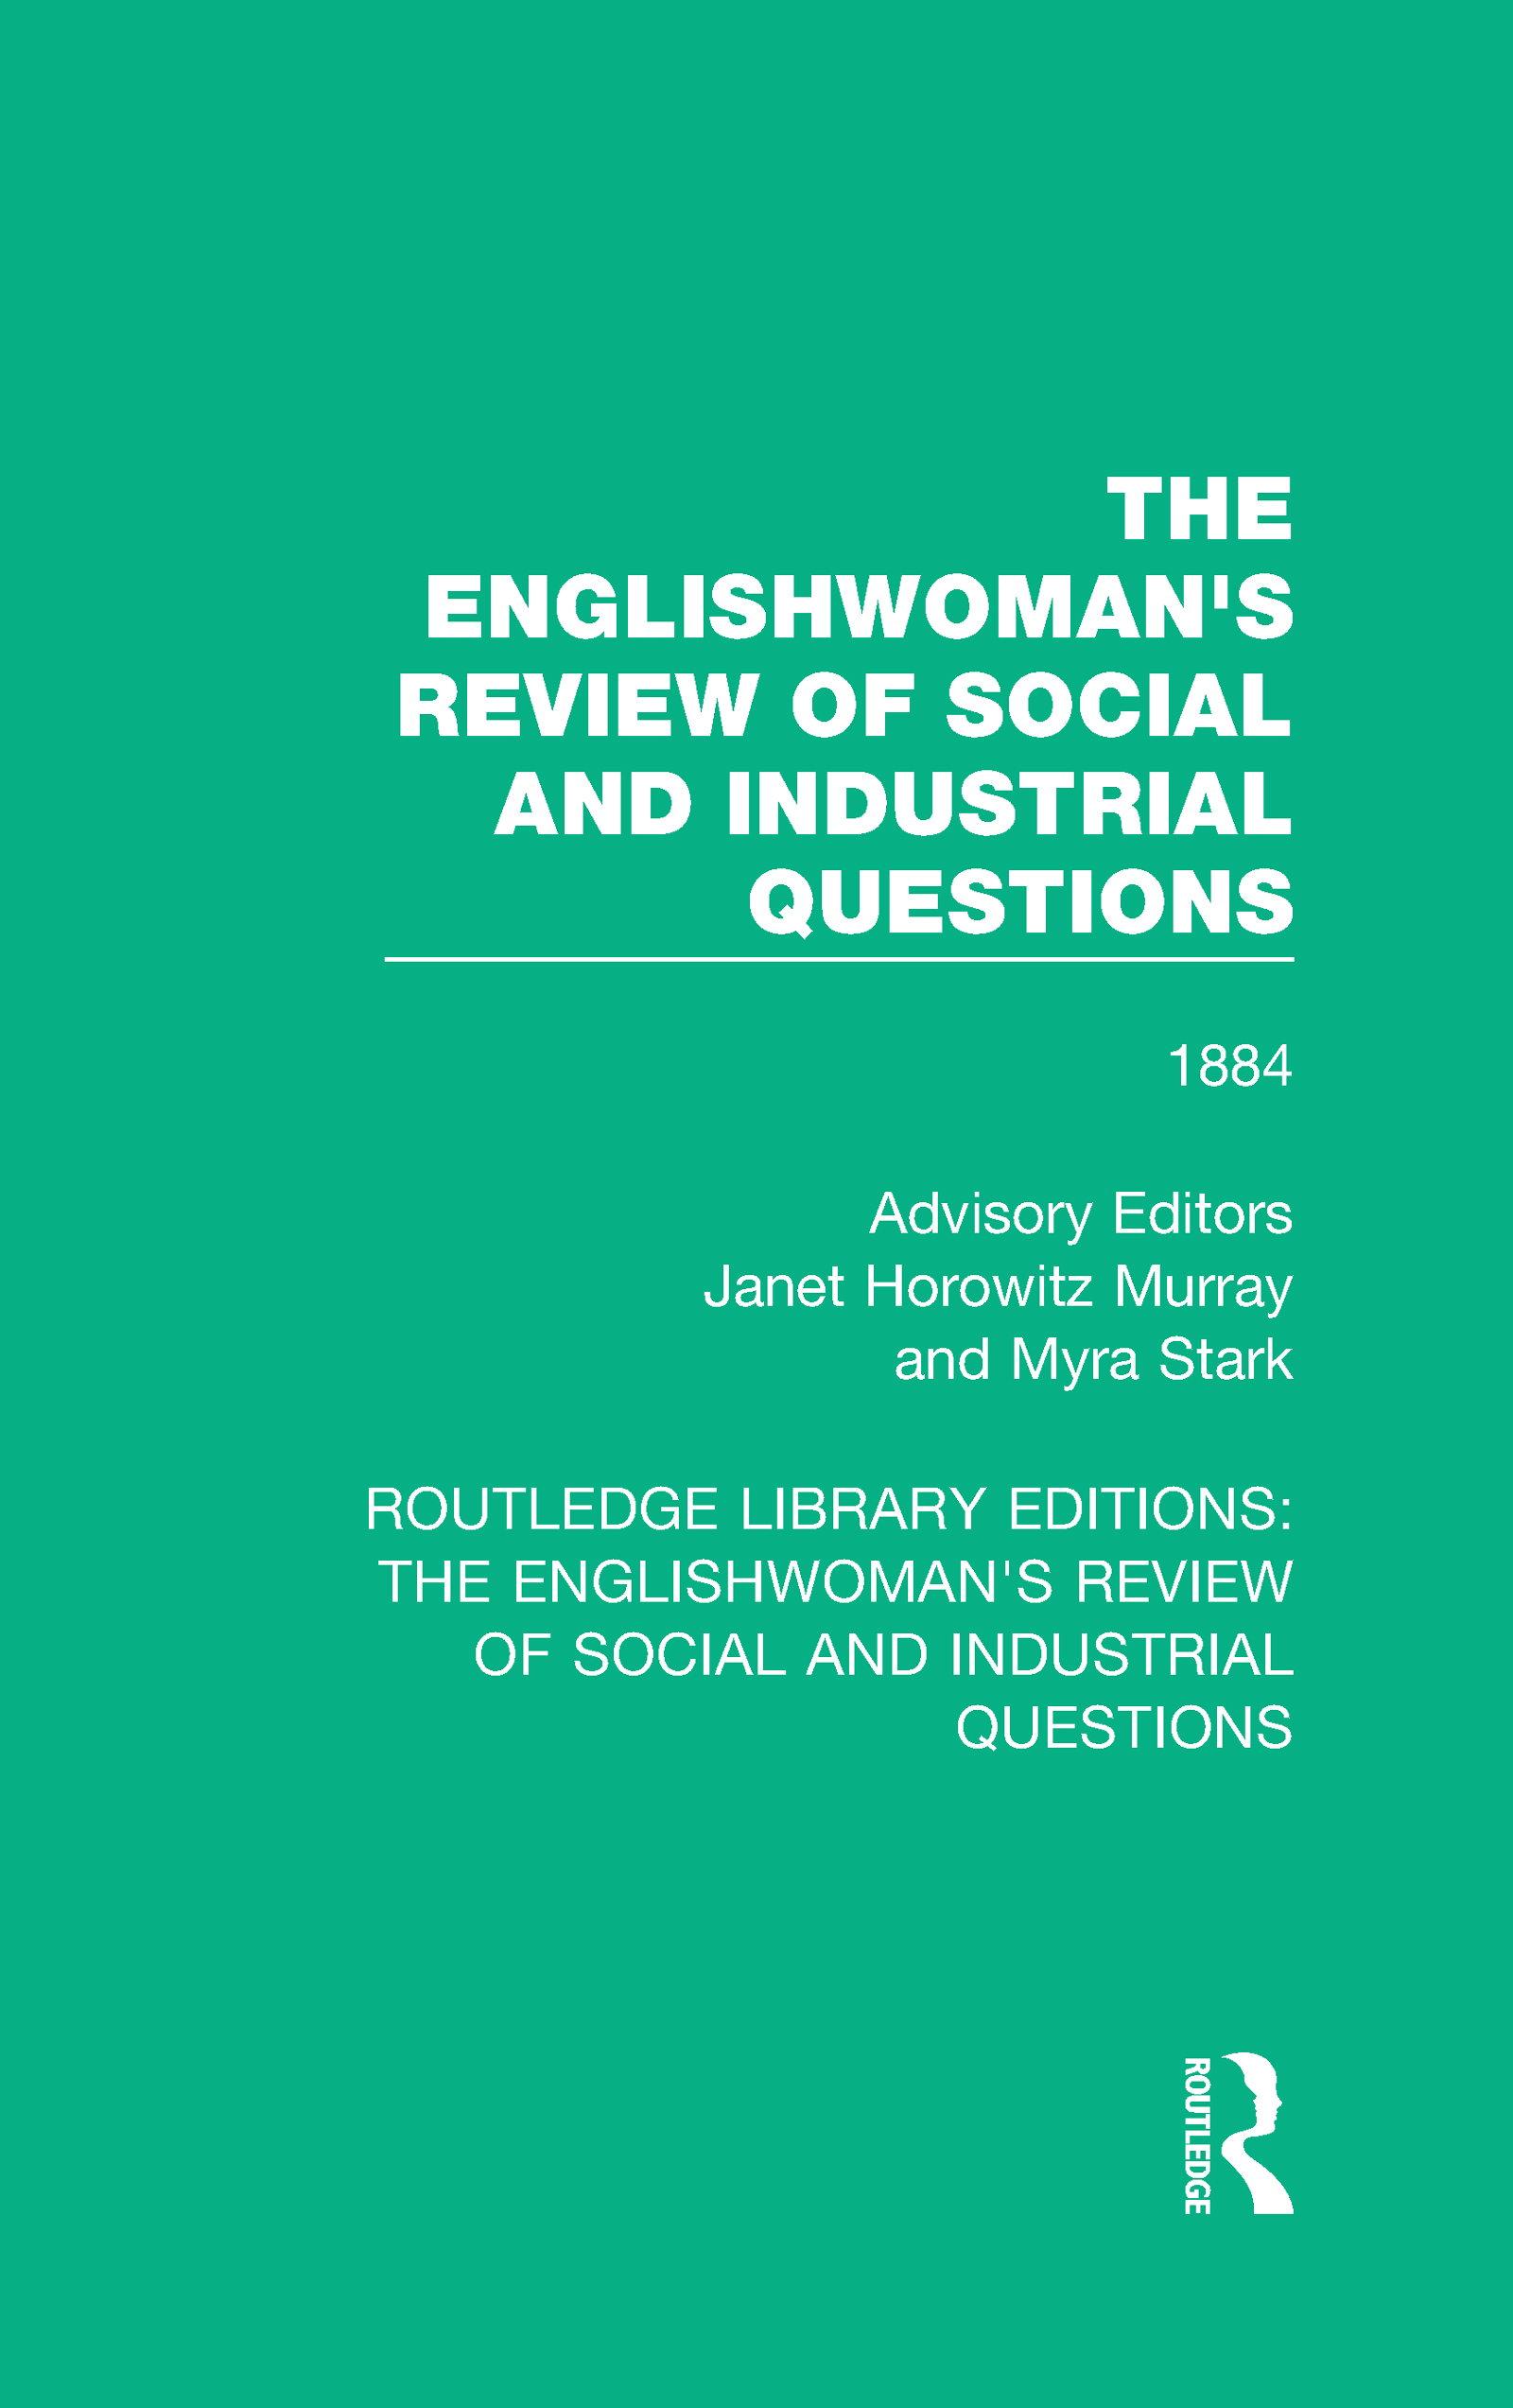 The Englishwoman's Review of Social and Industrial Questions: 1884 book cover